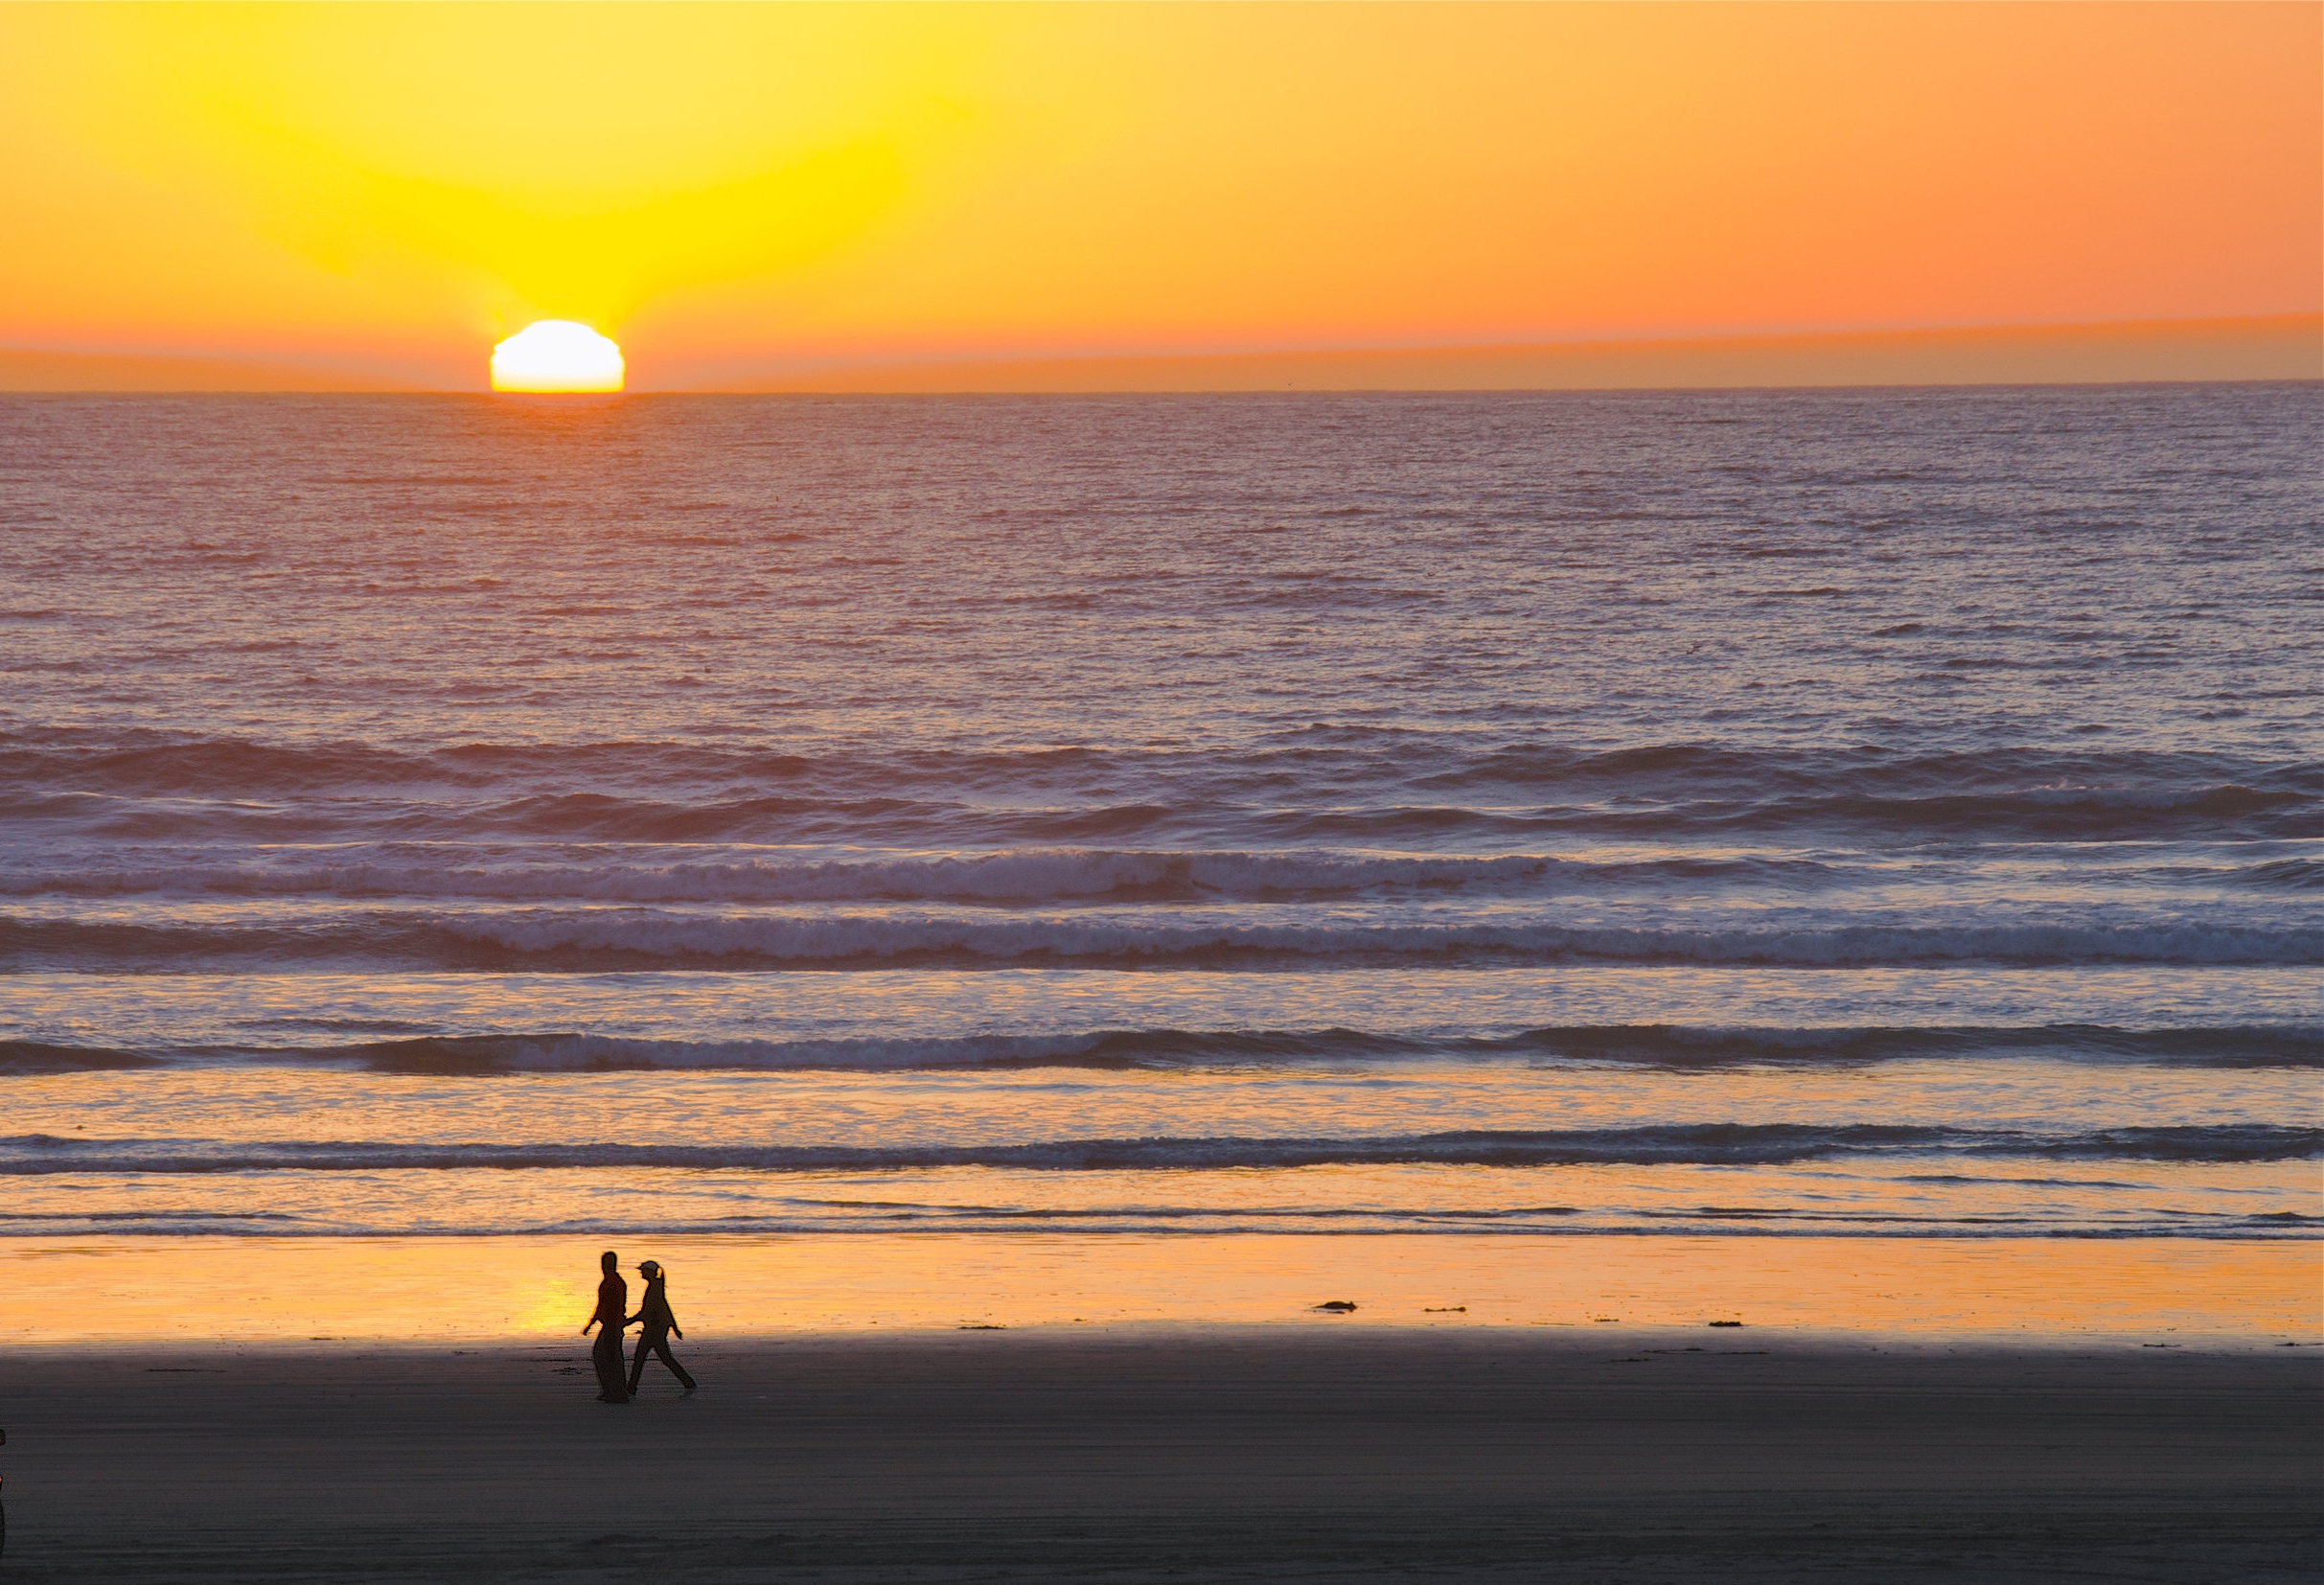 A romantic sunset at Pismo Beach.